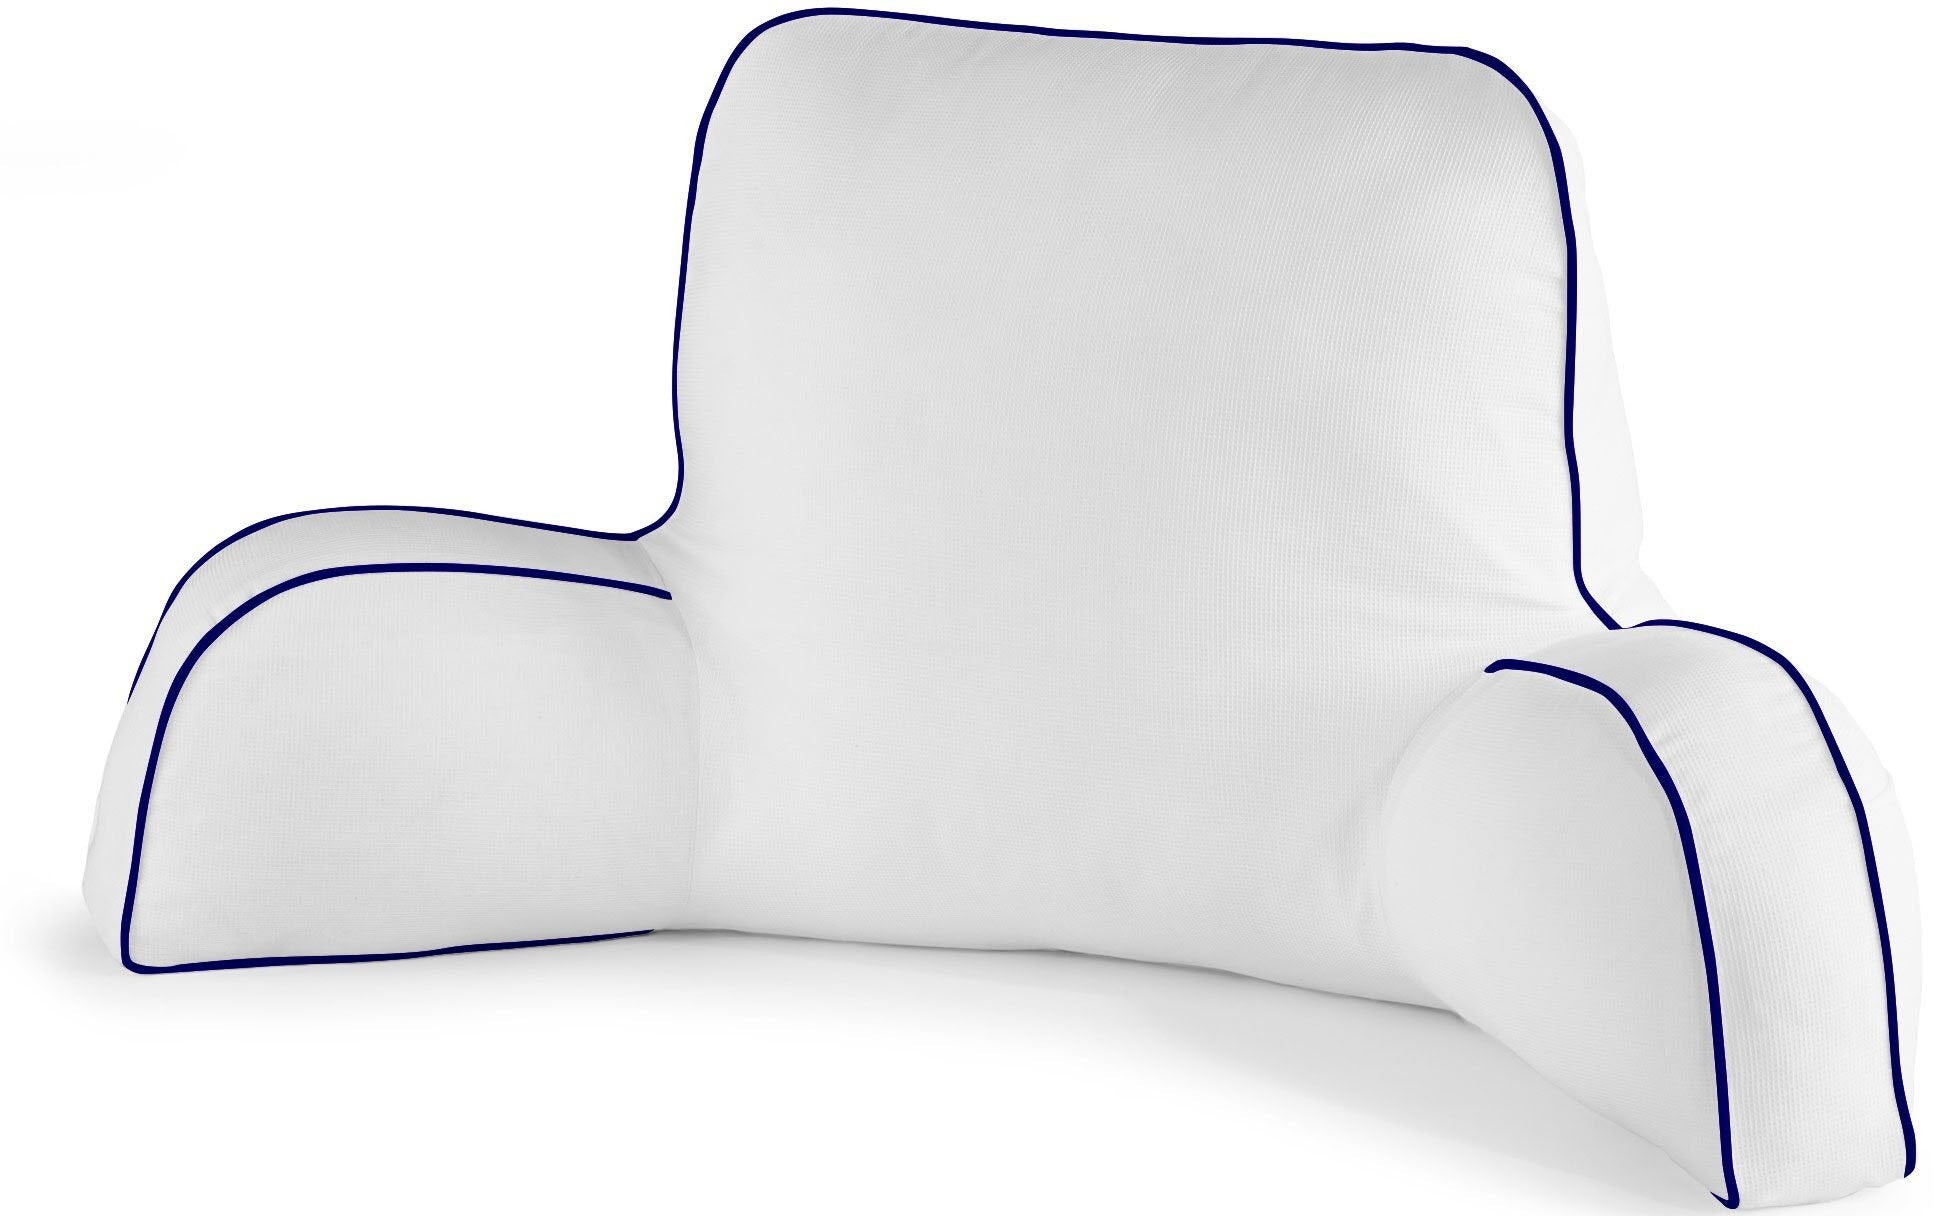 The Pique Backrest Pillow from Peacock Alley